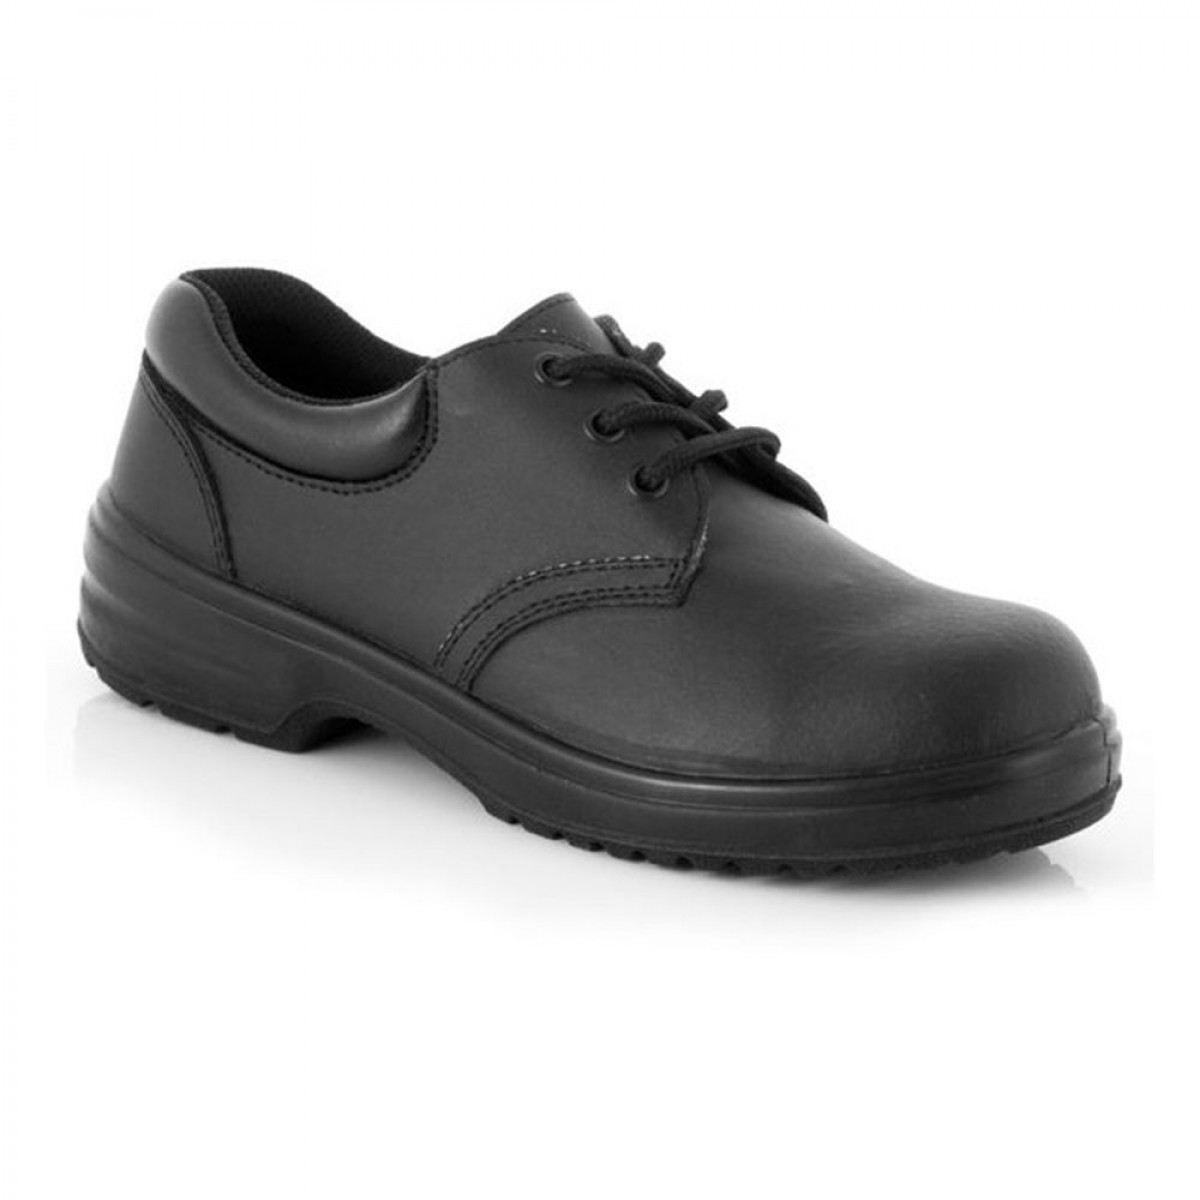 3 Eyelet Black Leather S1P Safety Shoes